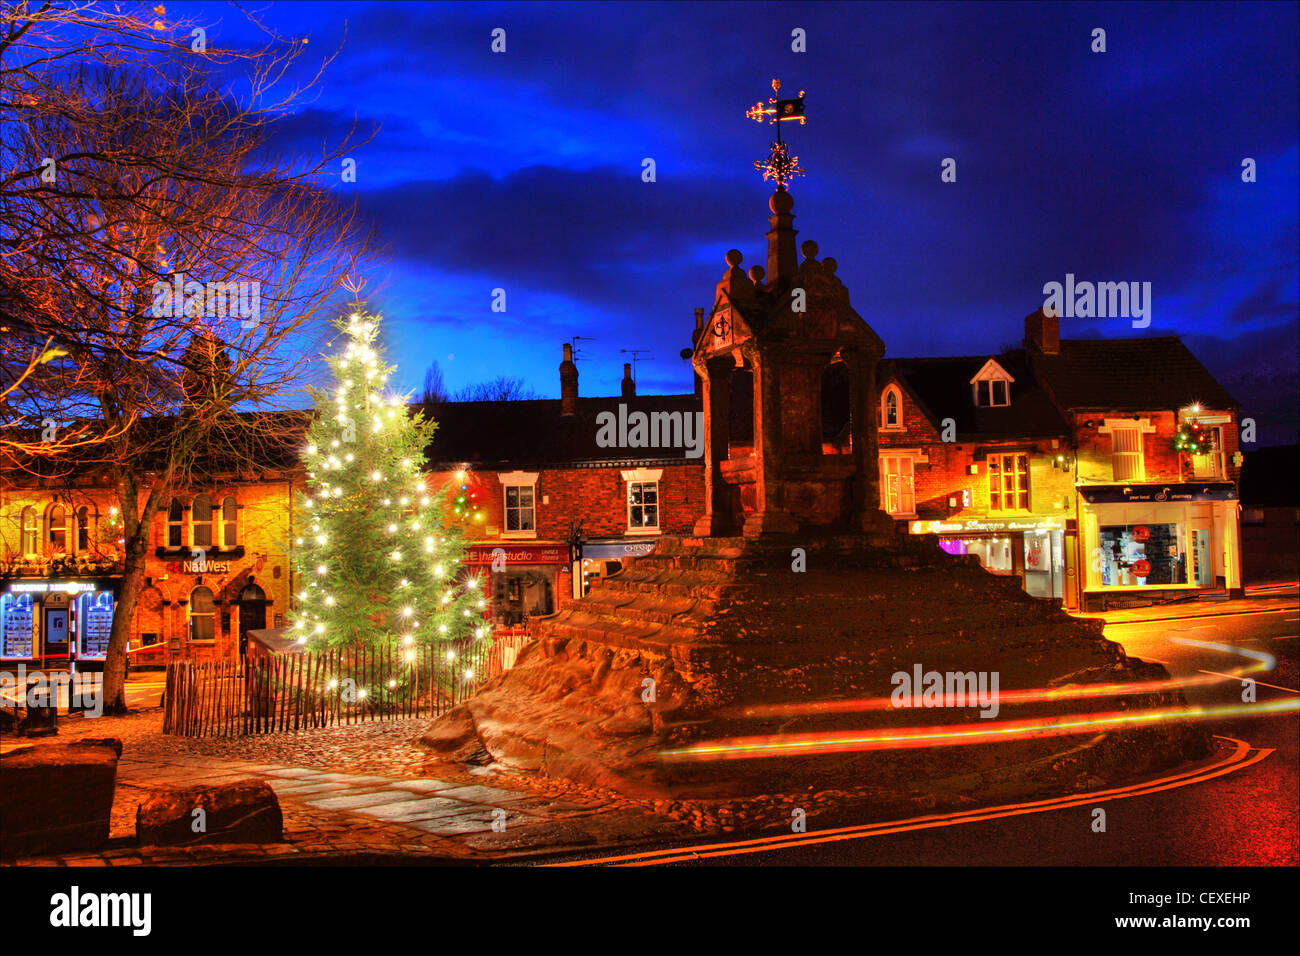 Xmas scene at the Christmas Tree at Lymm Cross, Lymm village, Cheshire, England, UK - Stock Image